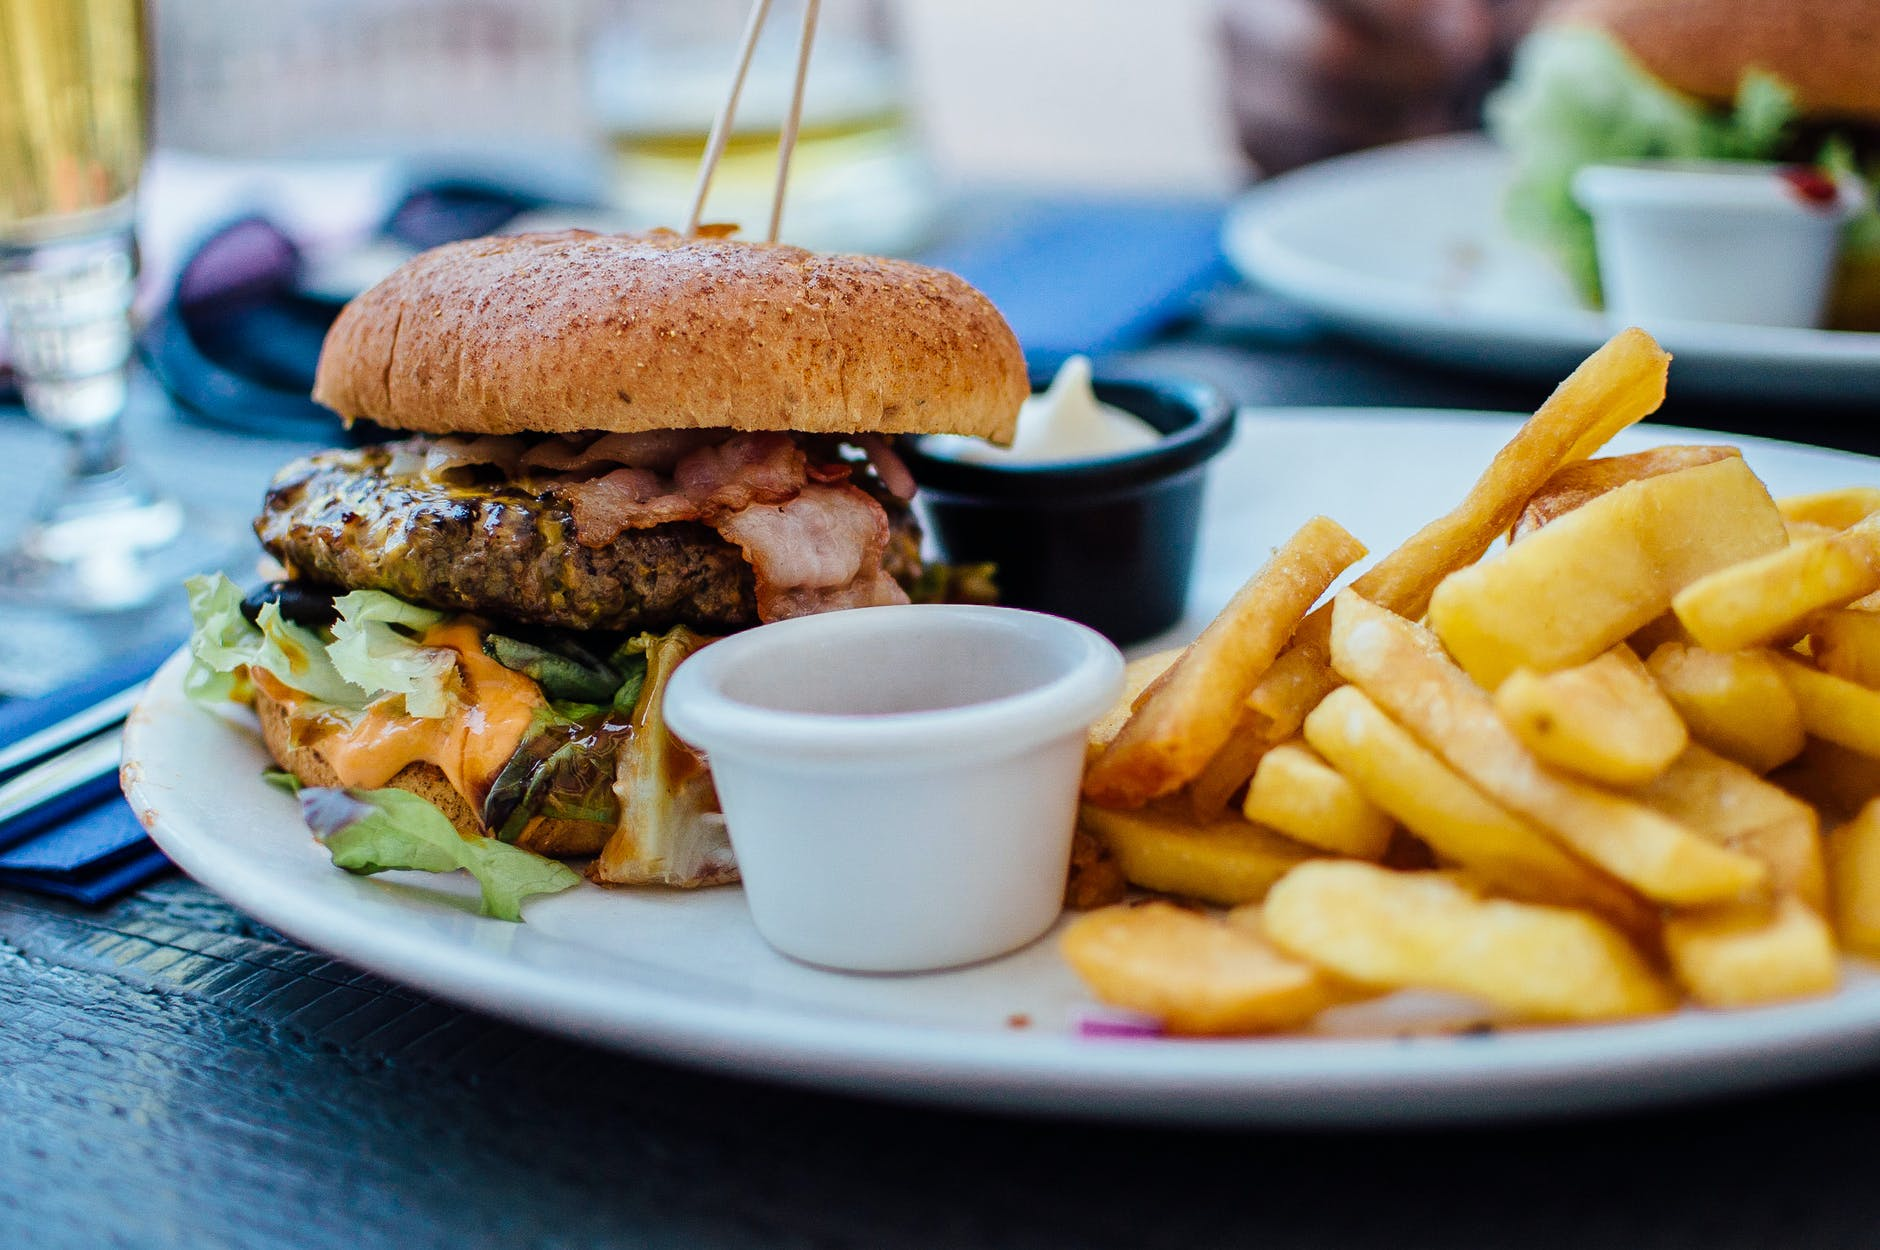 The Obesity Battle: Calorie reductions for industry